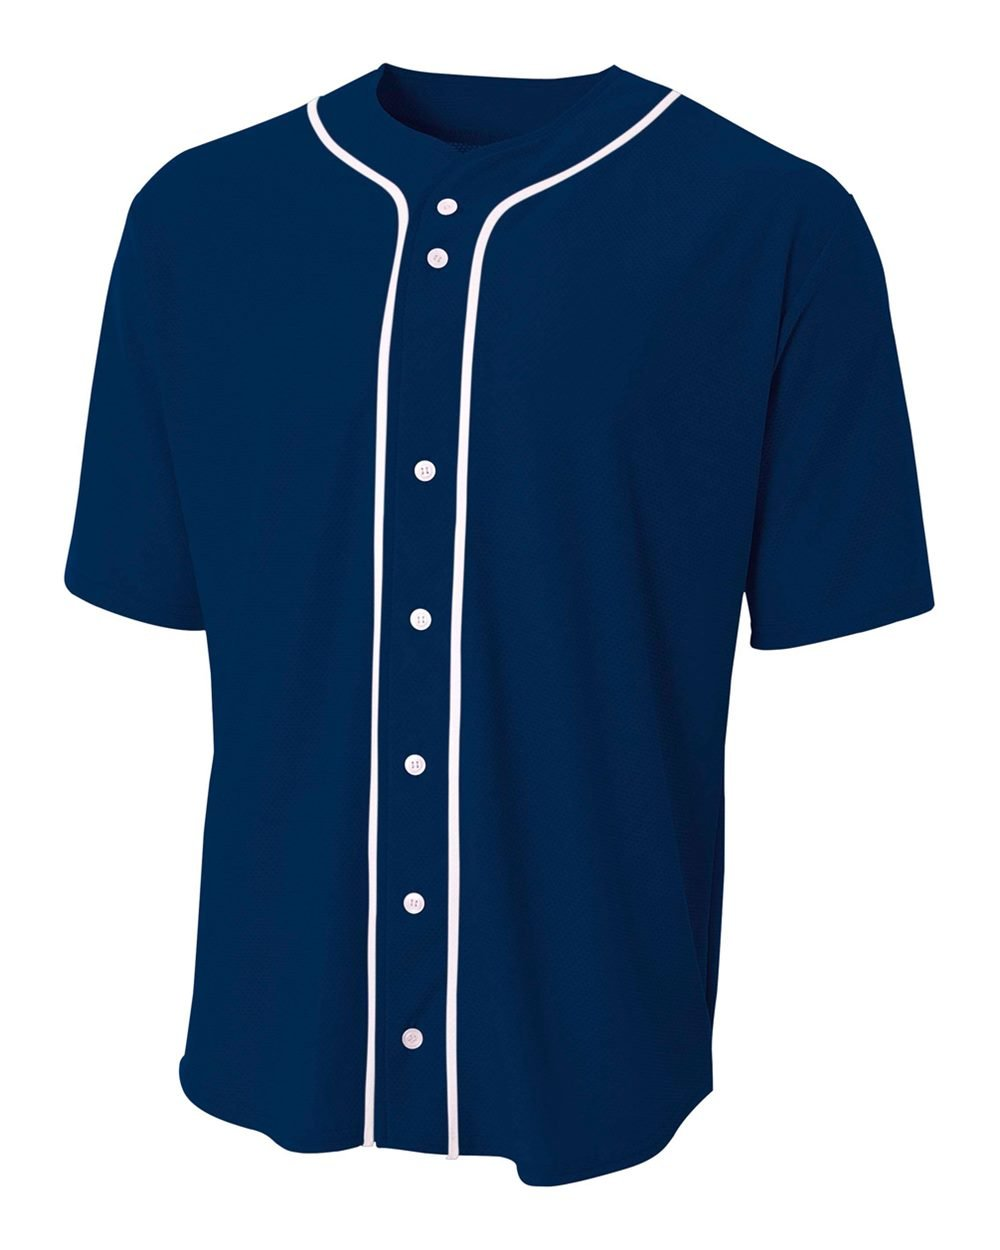 A4 Sportswear Navy Blue Youth XL (Blank) Full-Button Baseball Wicking Jersey by A4 Sportswear